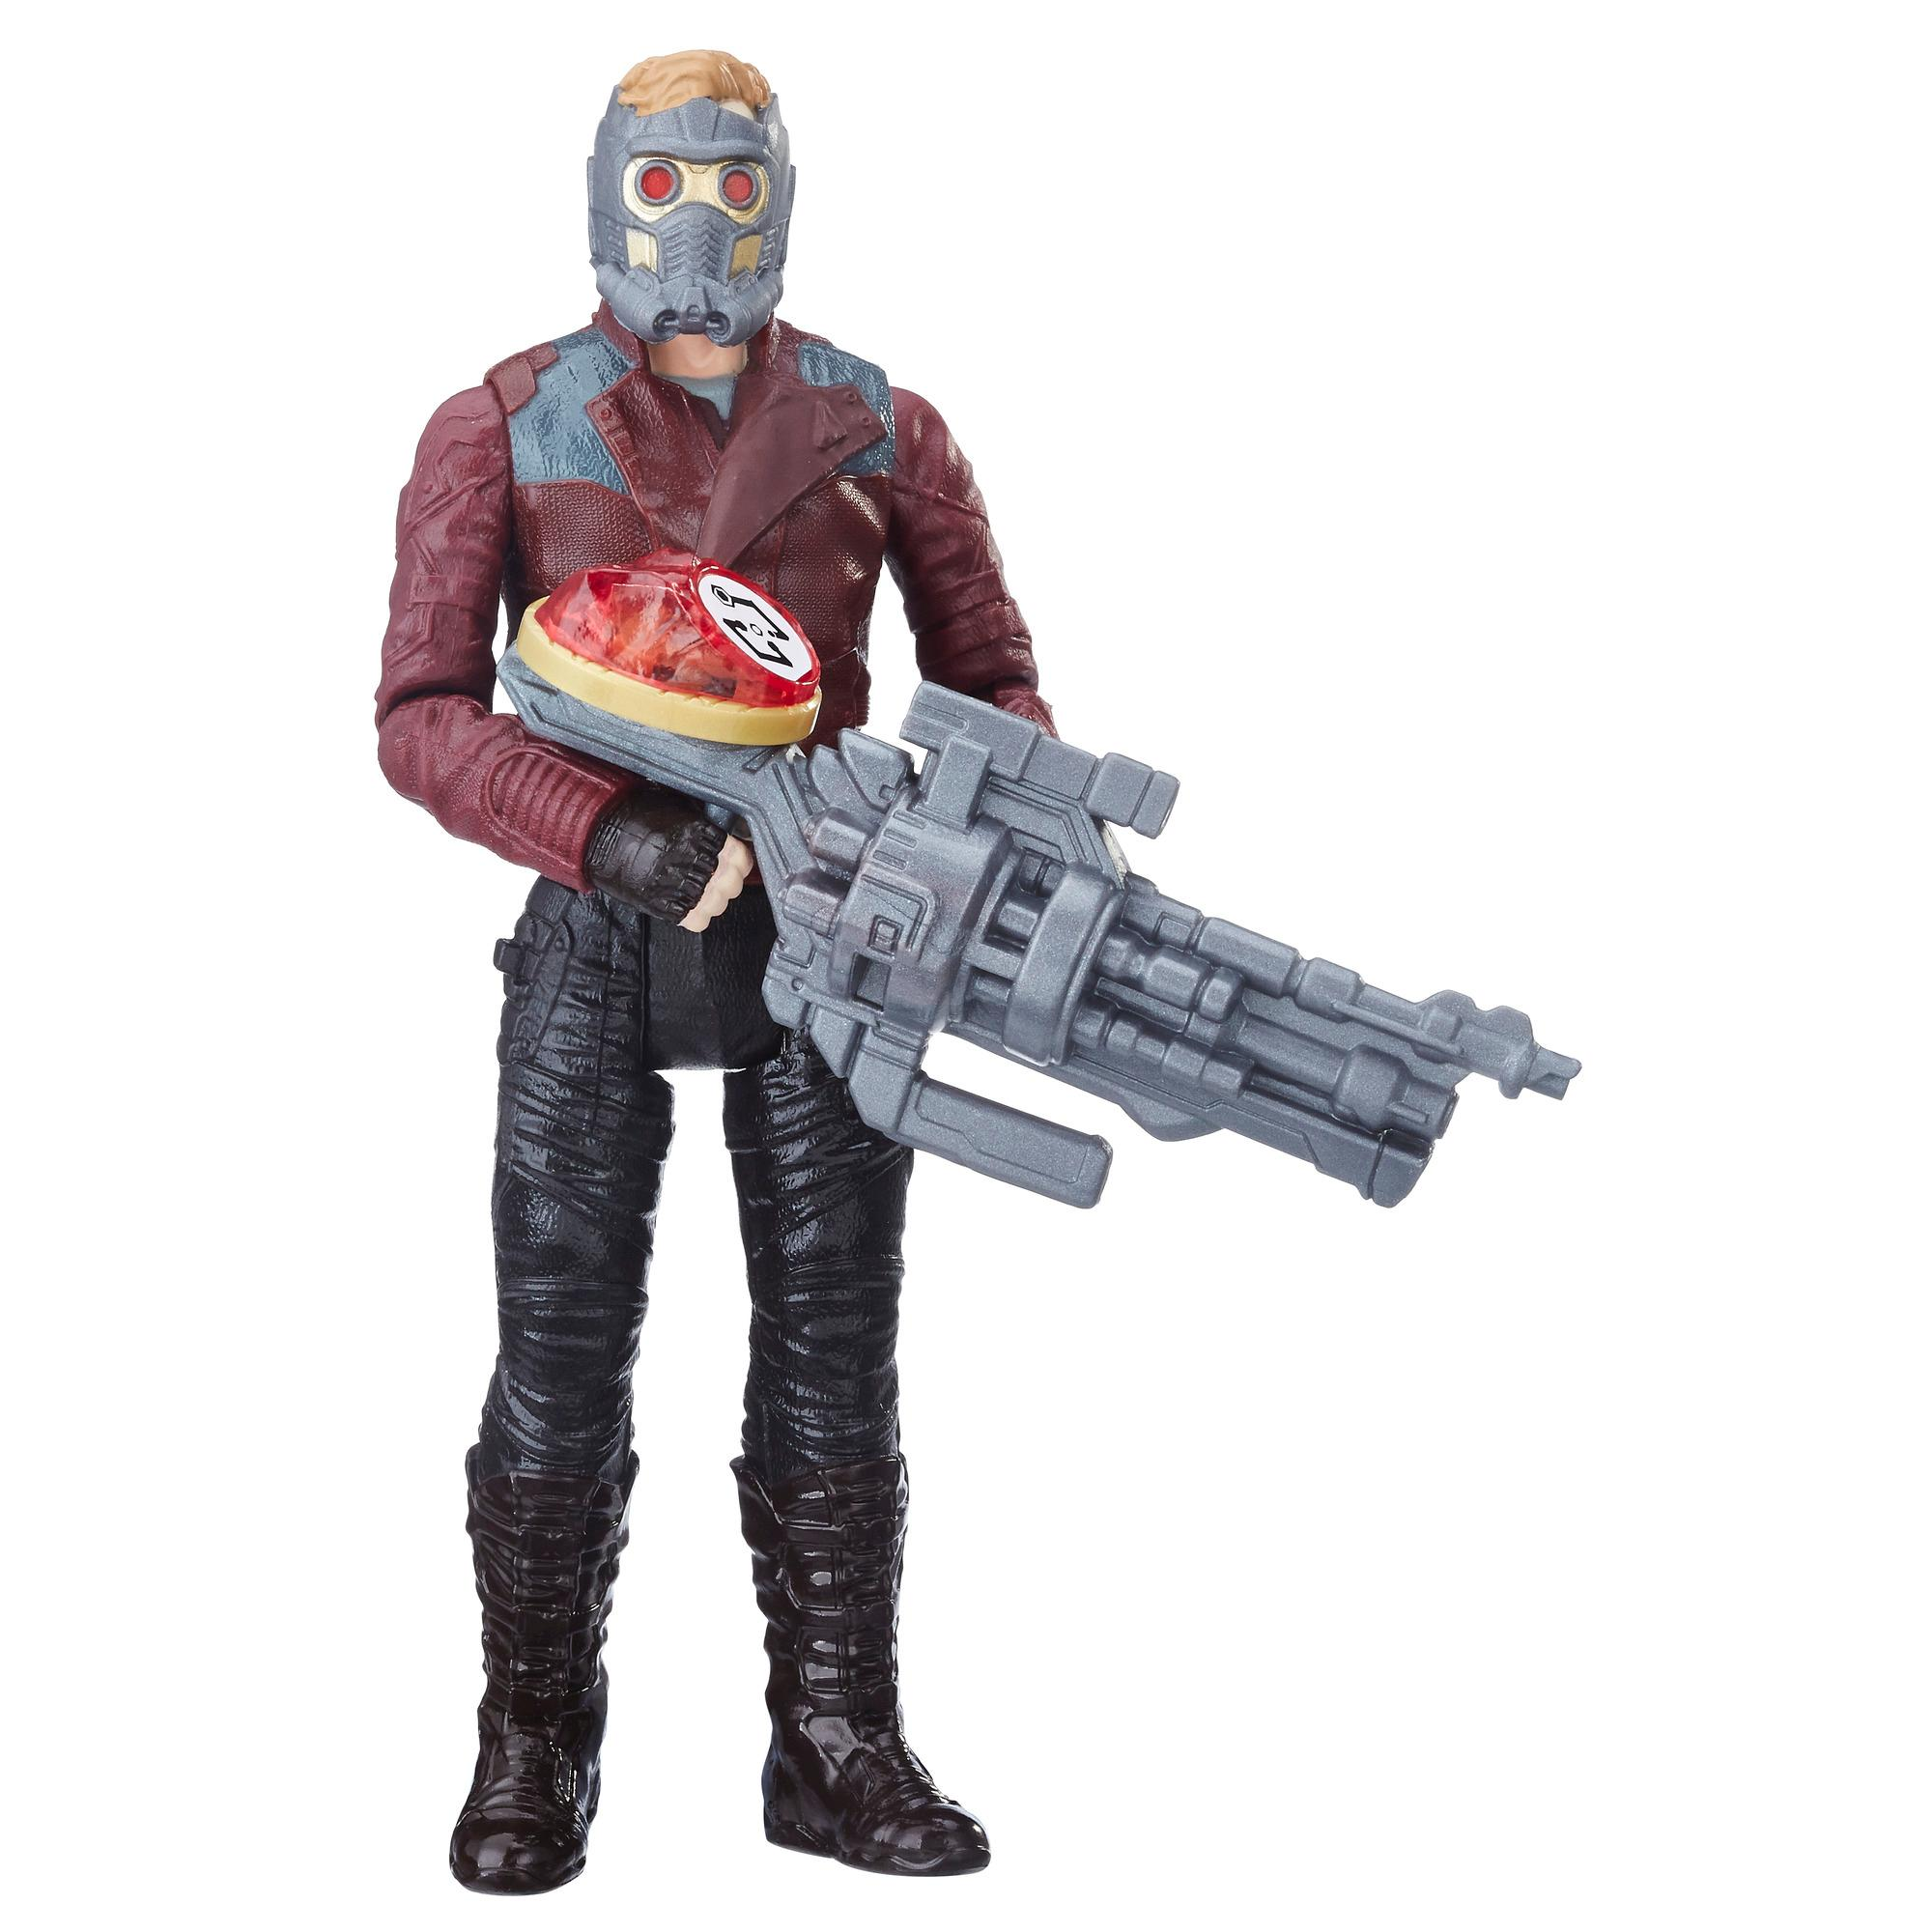 Marvel Avengers: Infinity War Star-Lord with Infinity Stone